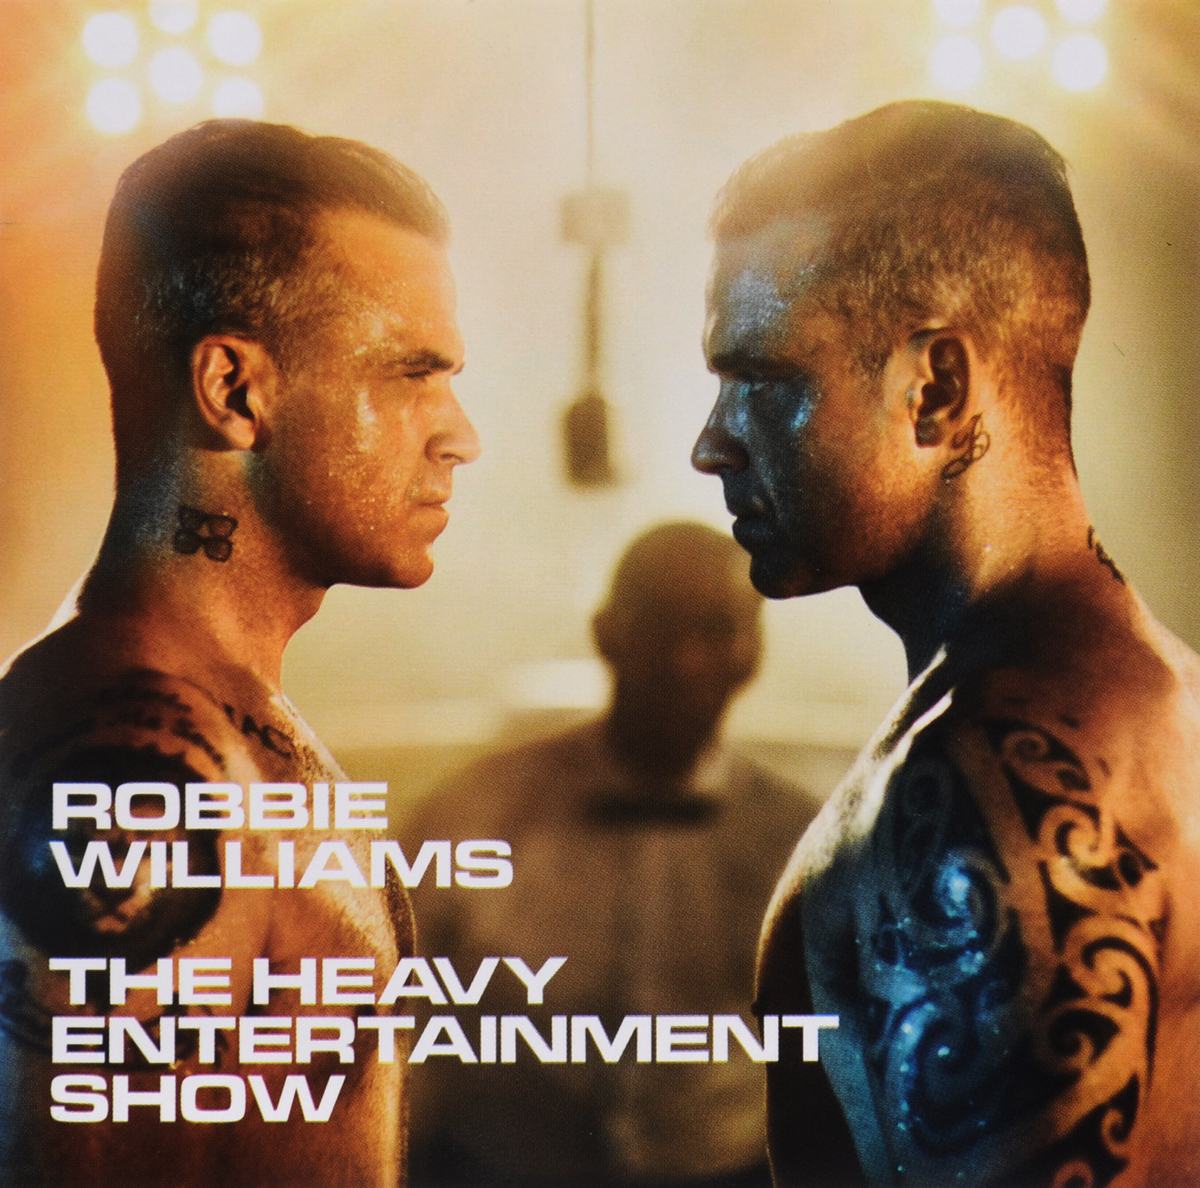 Робби Уильямс Robbie Williams. Heavy Entertainment Show robbie williams robbie williams swings both ways 2 lp